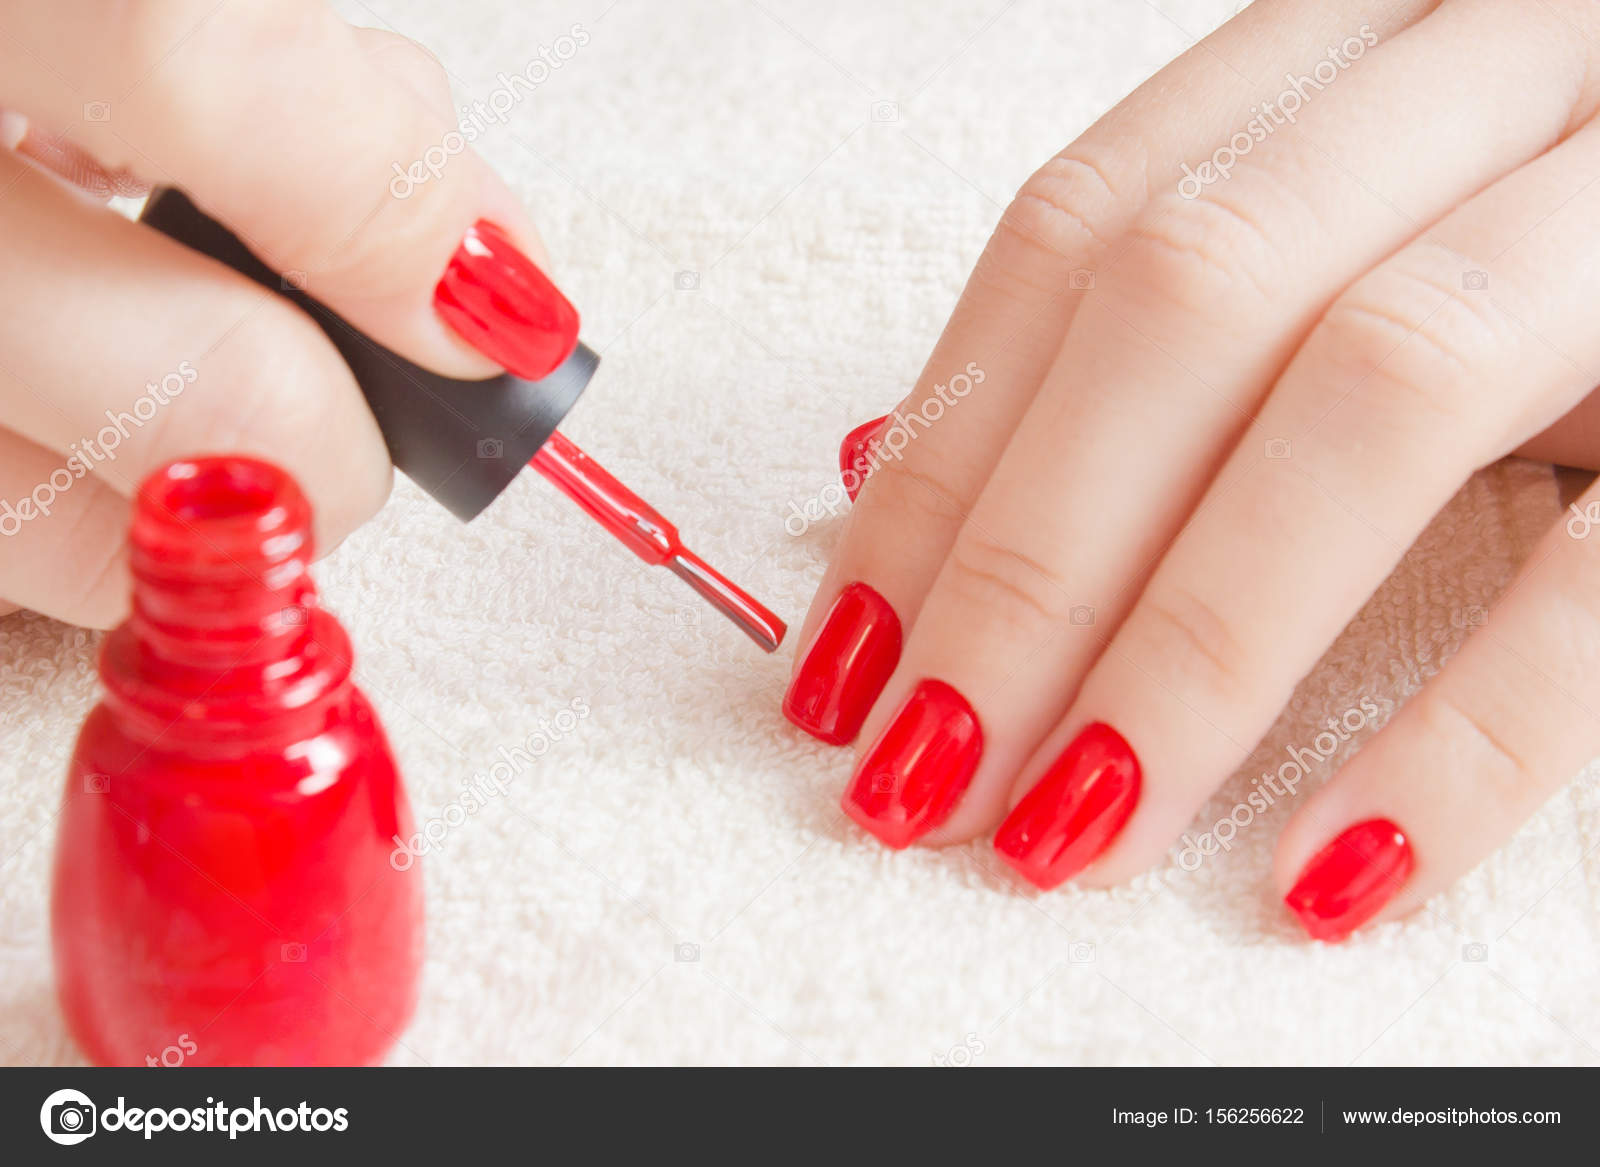 Manicure - Beautiful manicured woman\'s nails with red nail polish on ...